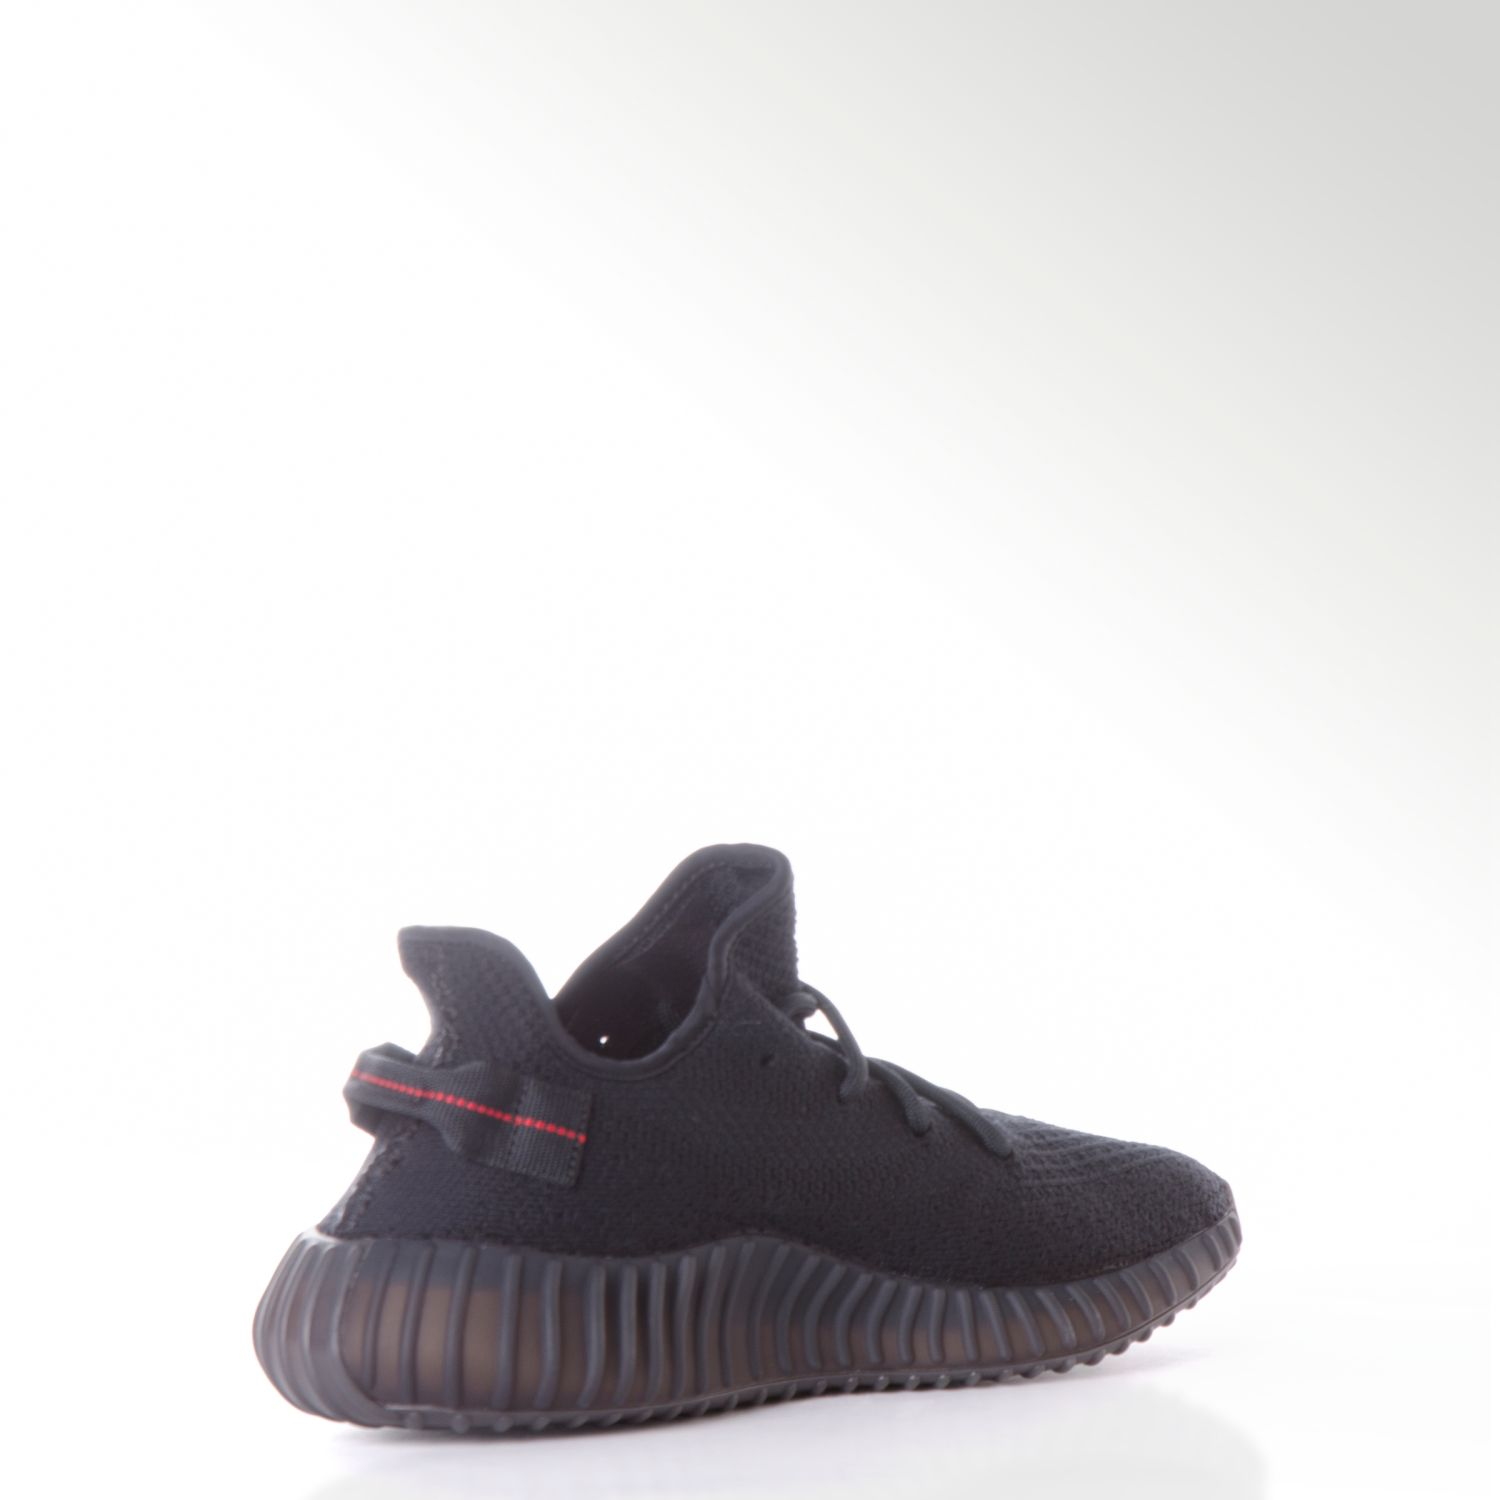 Yeezy Boost 350 V2 Black Red [3]